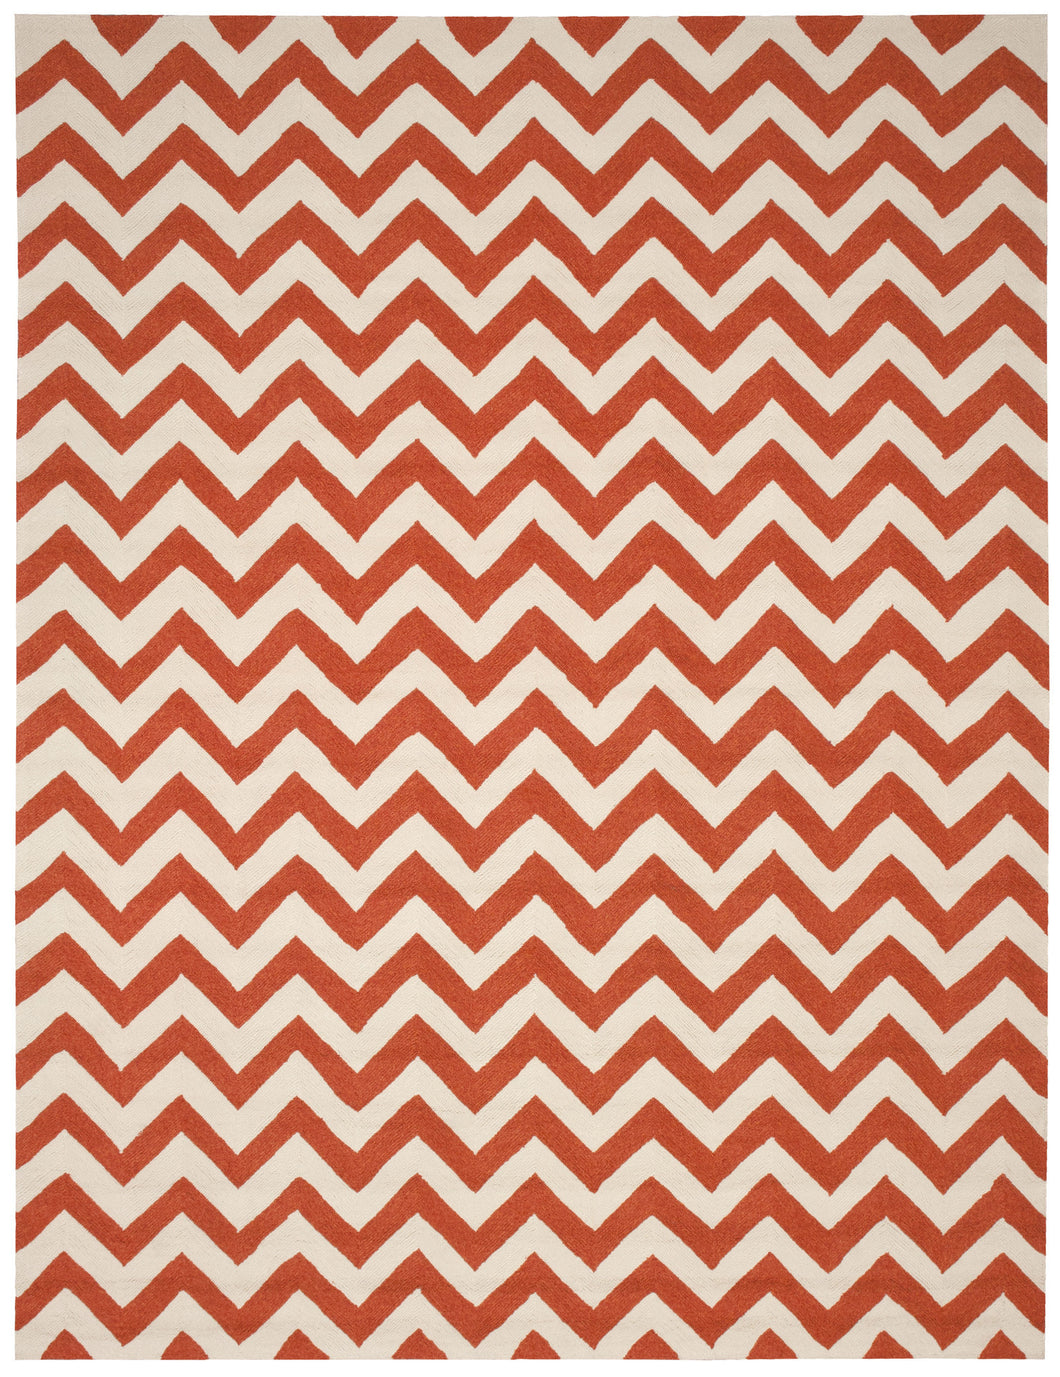 Nourison Portico Orange Area Rug POR03 ORG